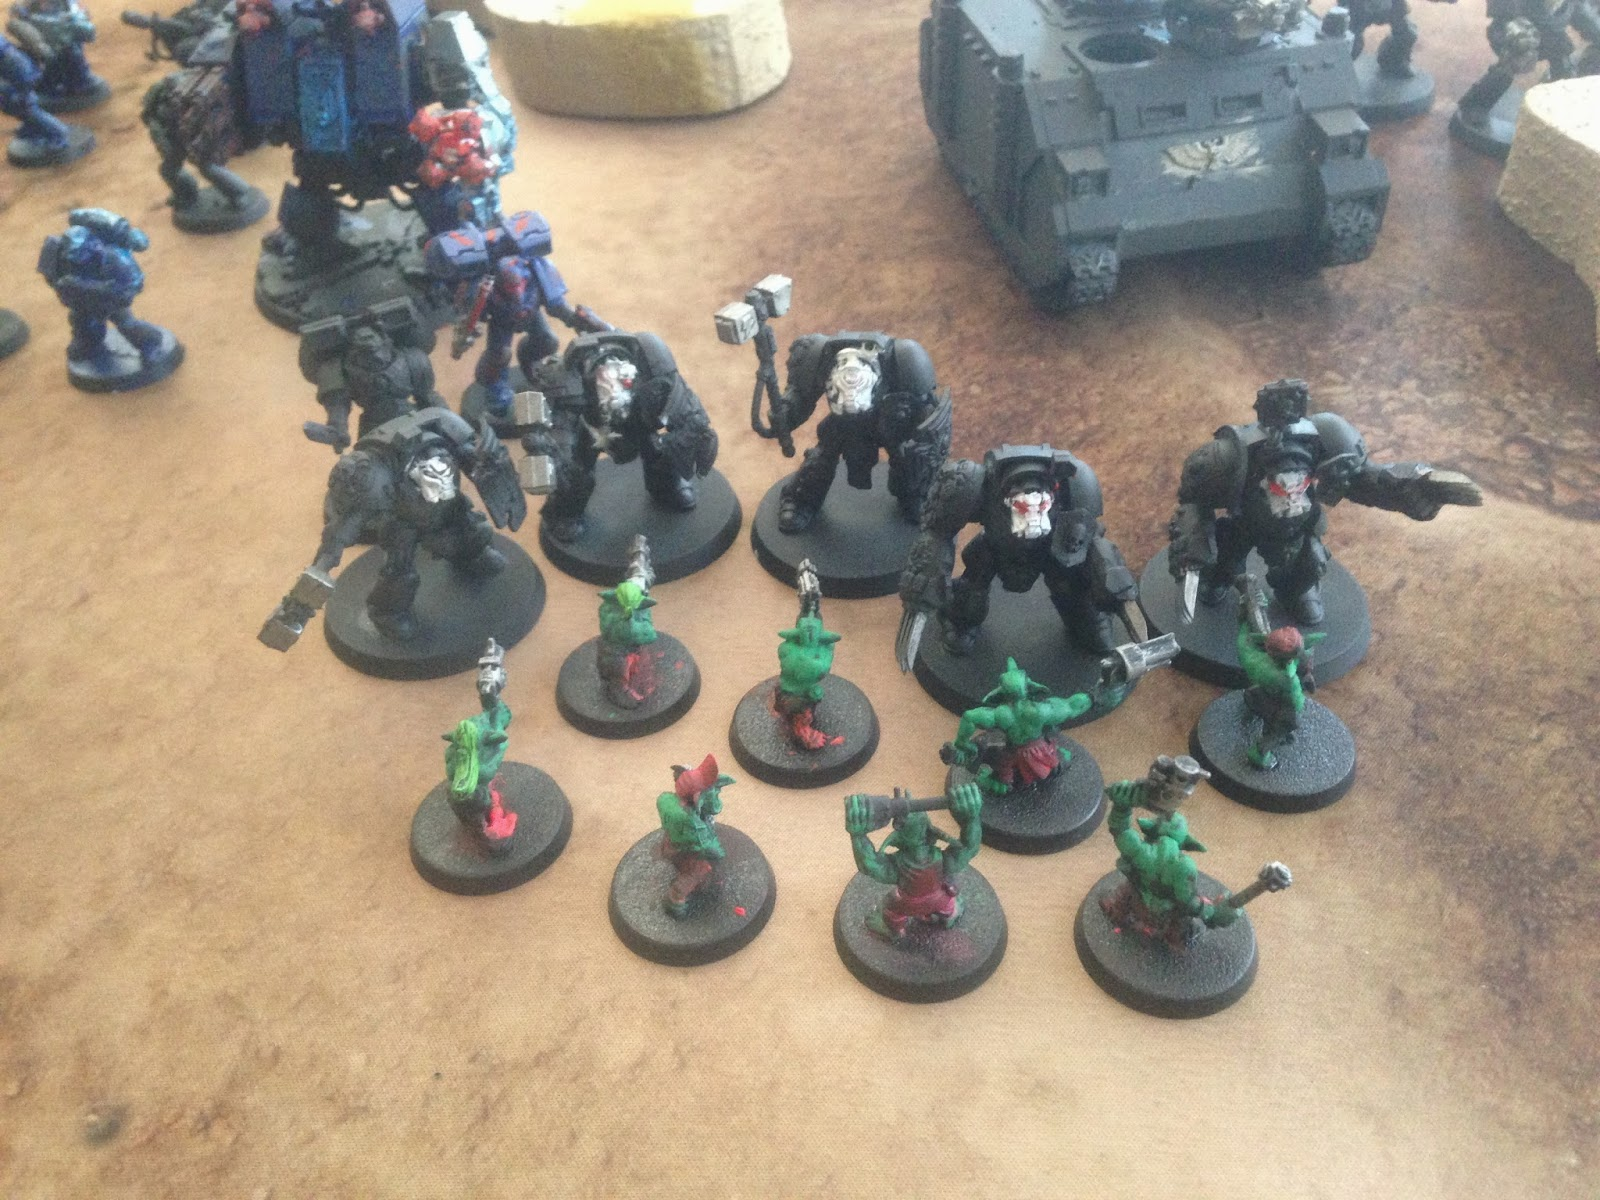 Gretchins fight Terminators, BAO 2014